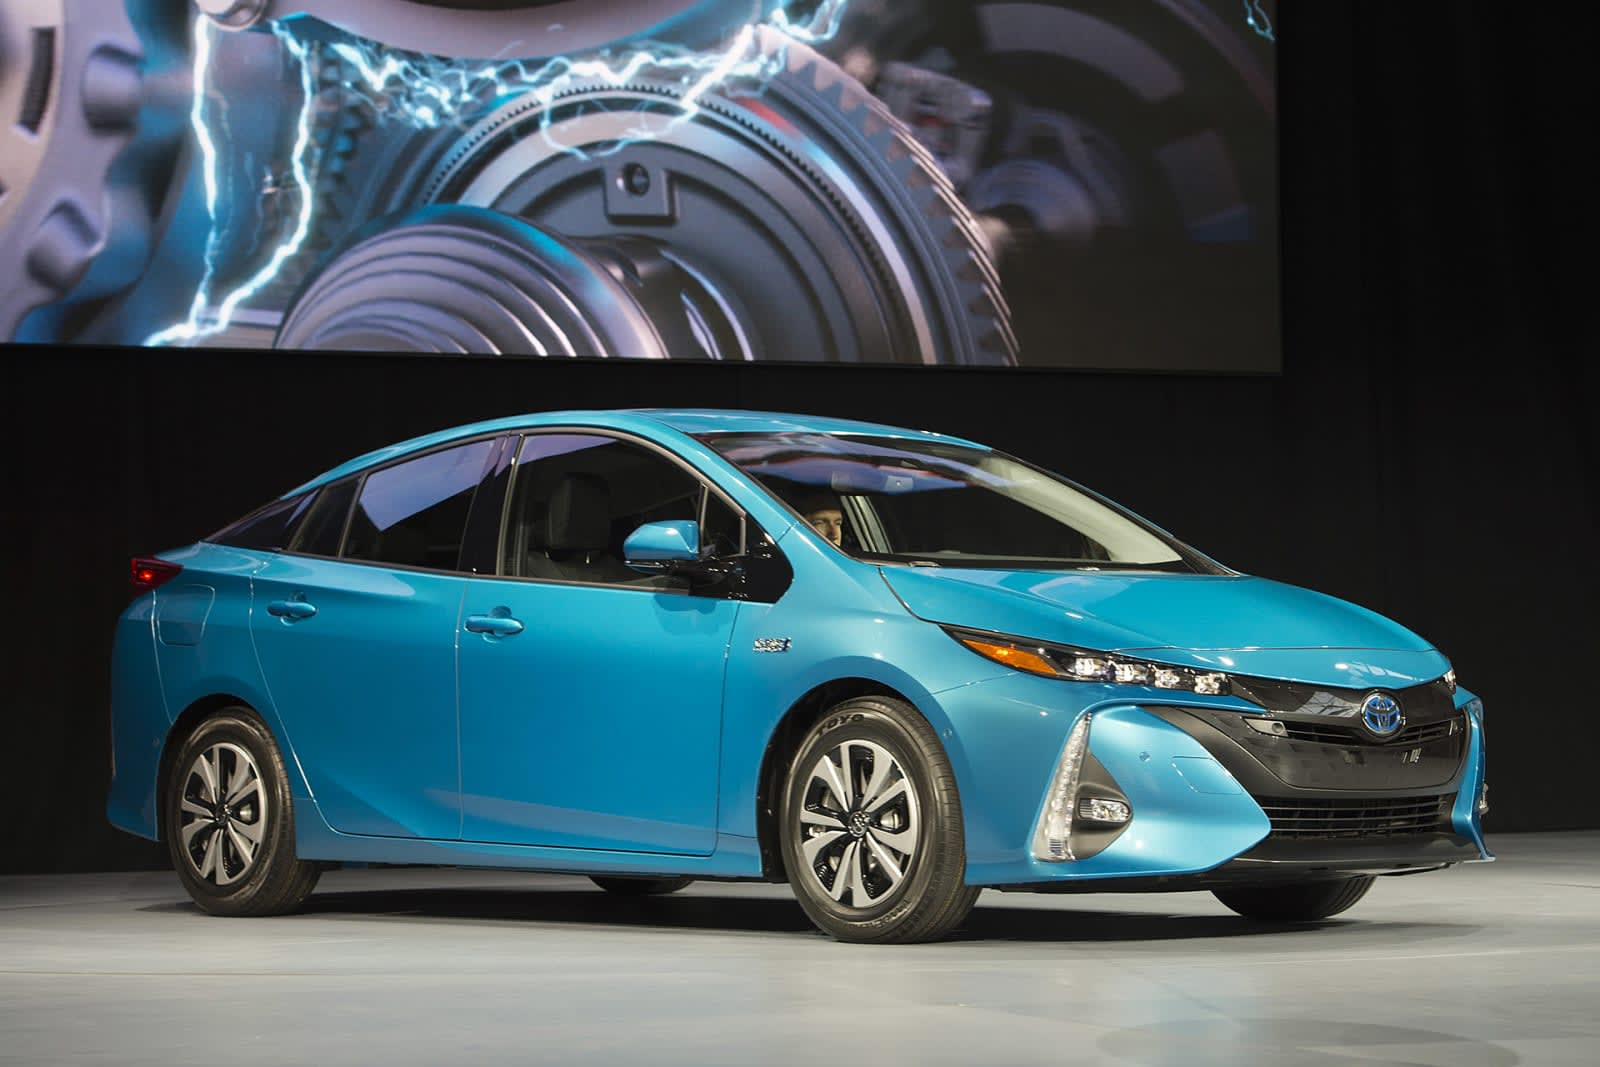 Drew Phillips Toyota S Latest Take On A Plug In Hybrid The 2017 Prius Prime